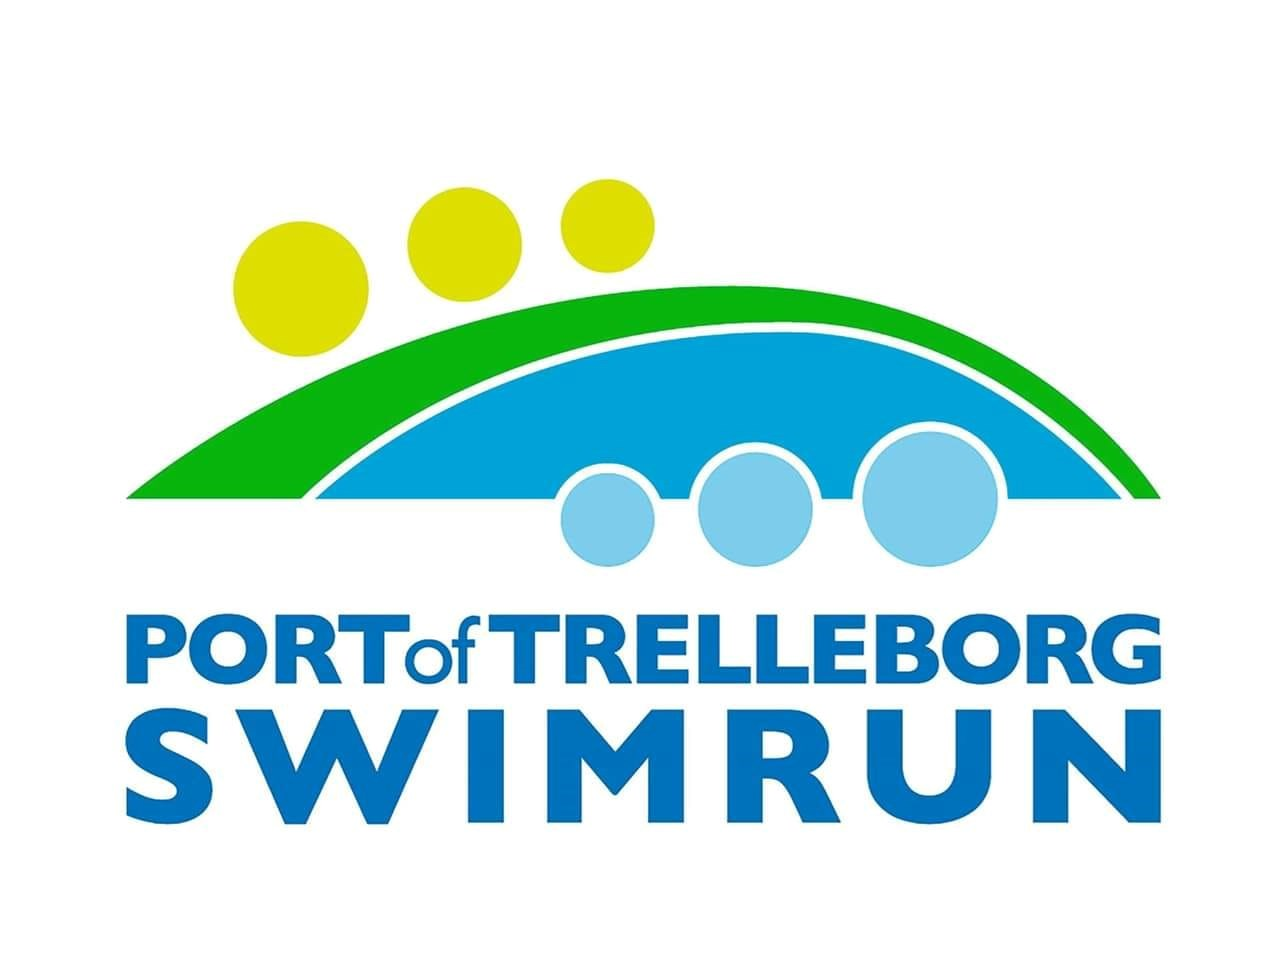 Port of Trelleborg Swimrun 2019